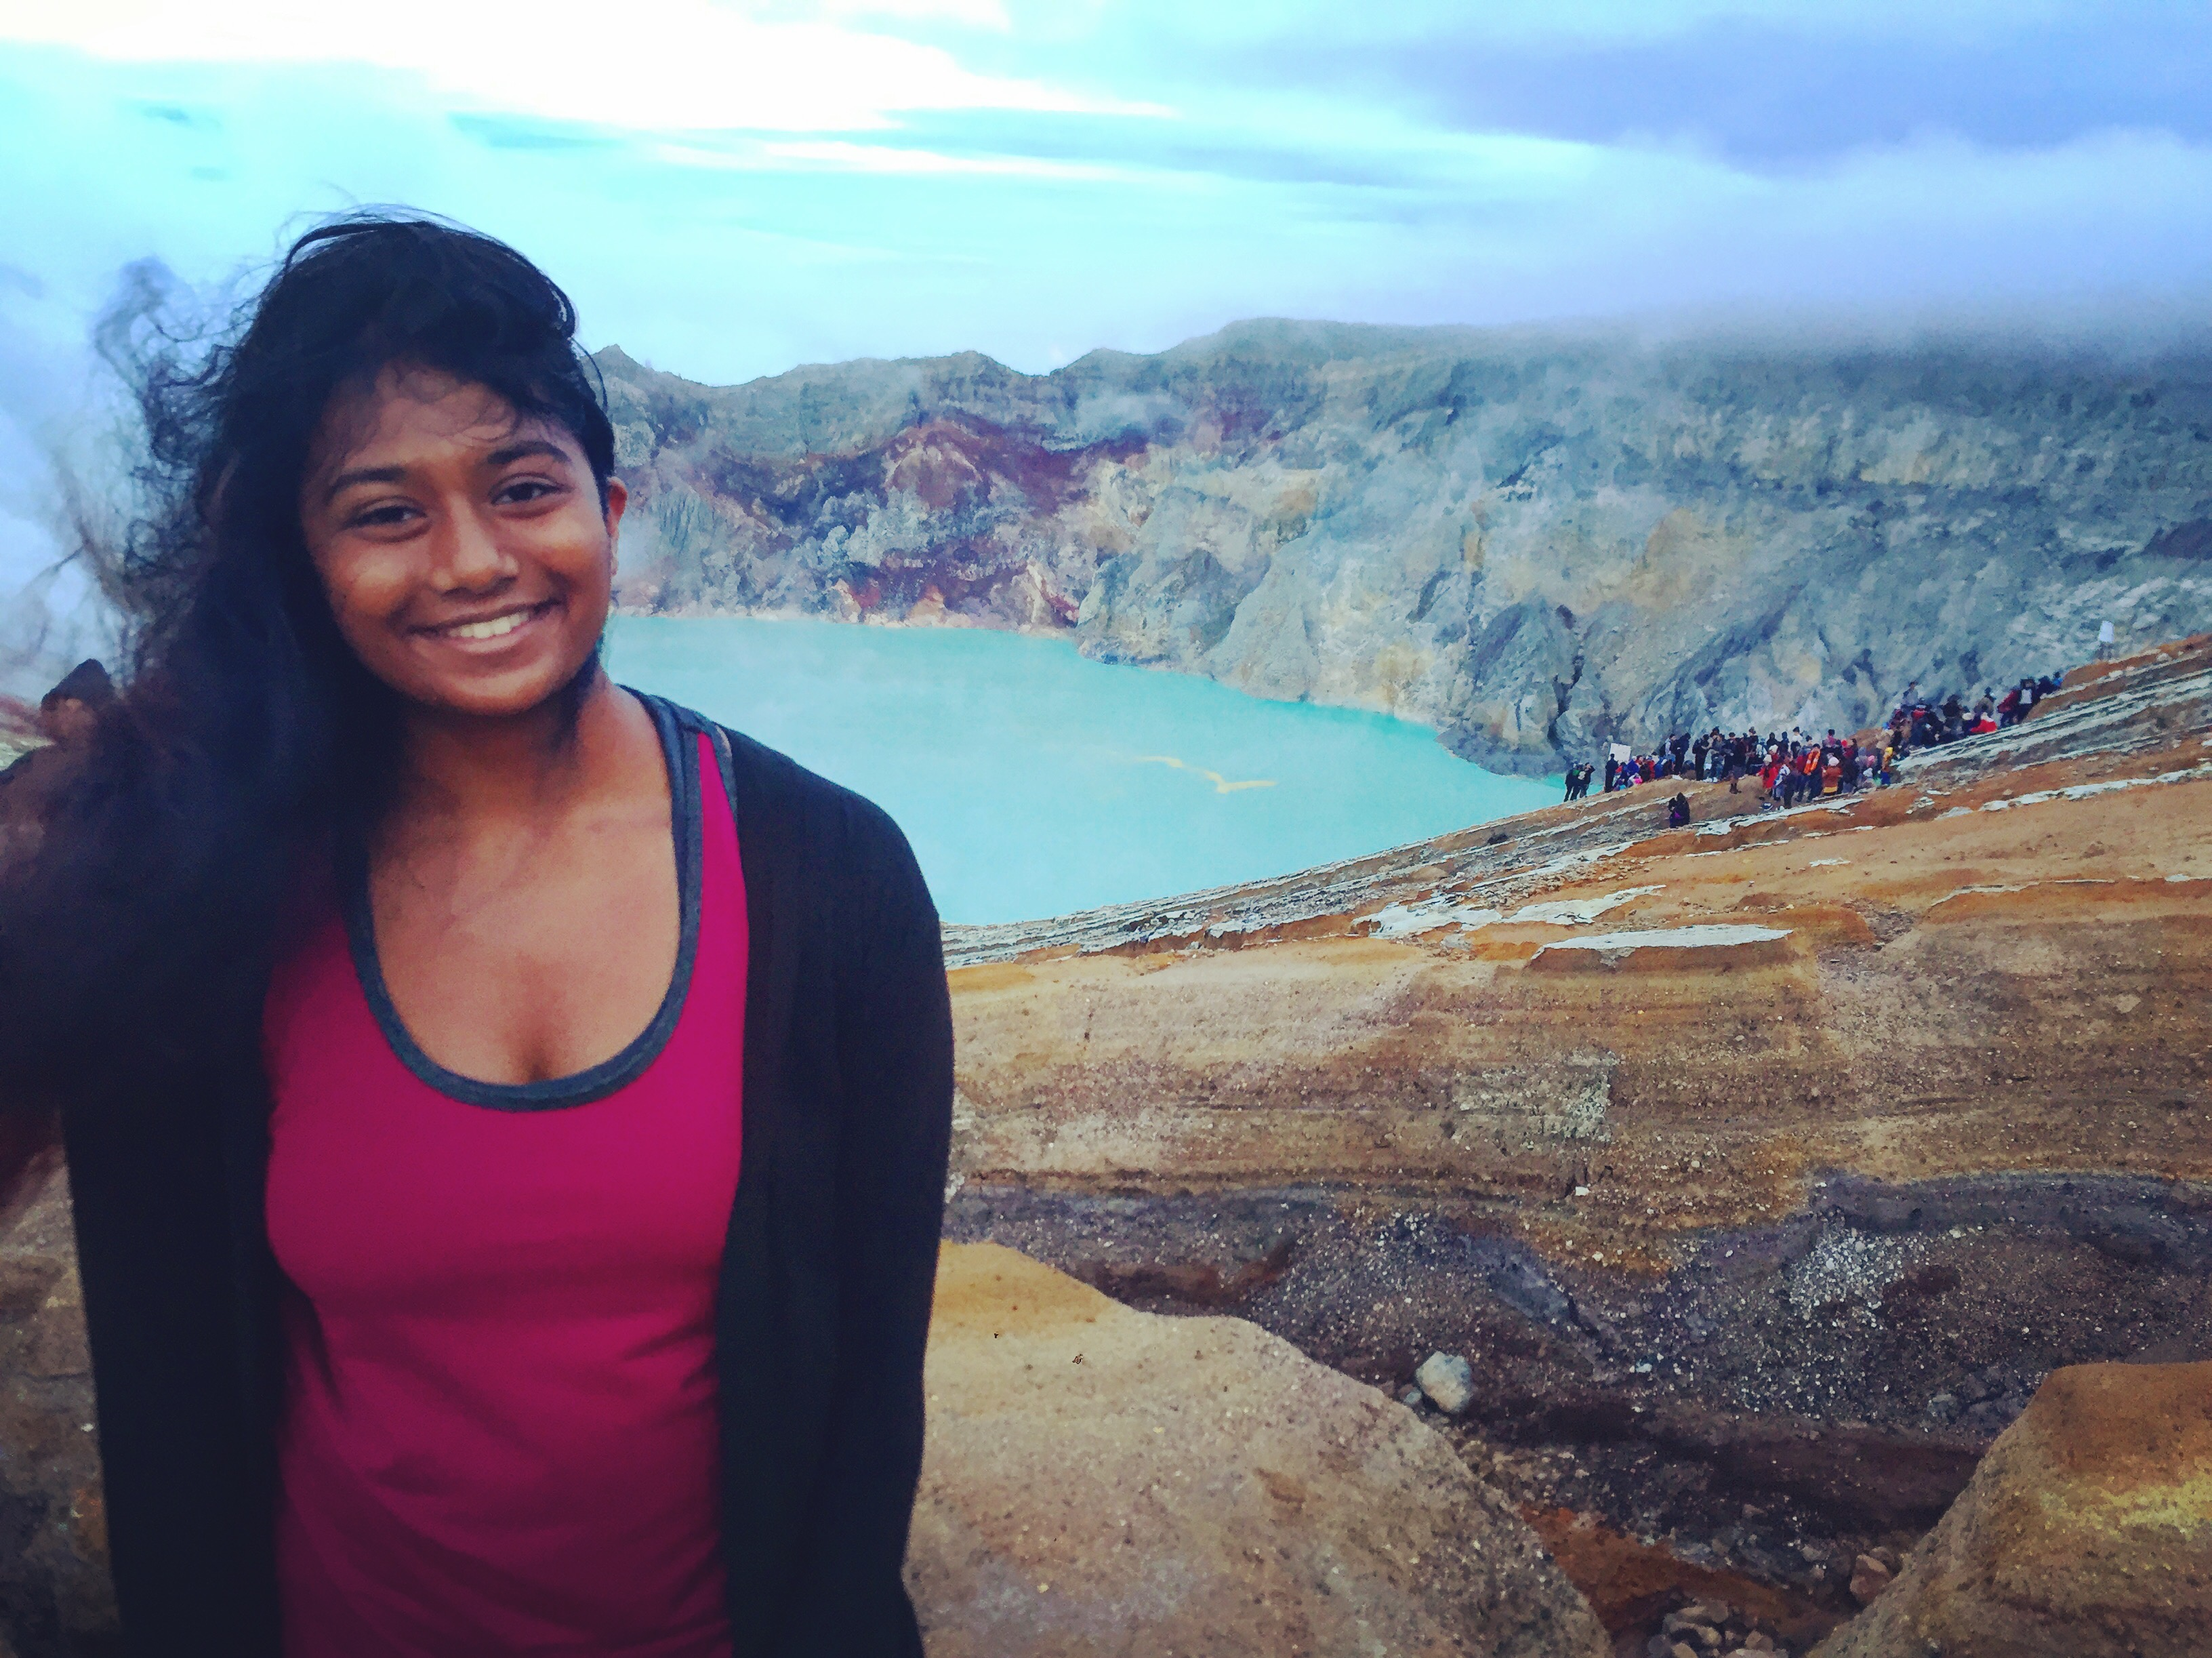 Living in Cambodia made it easy to travel throughout Asia. Varsha visited Japan, South Korea, Indonesia, Myanmar, Thailand, Laos, the Philippines, China and India. Here she is after a hike in Java.